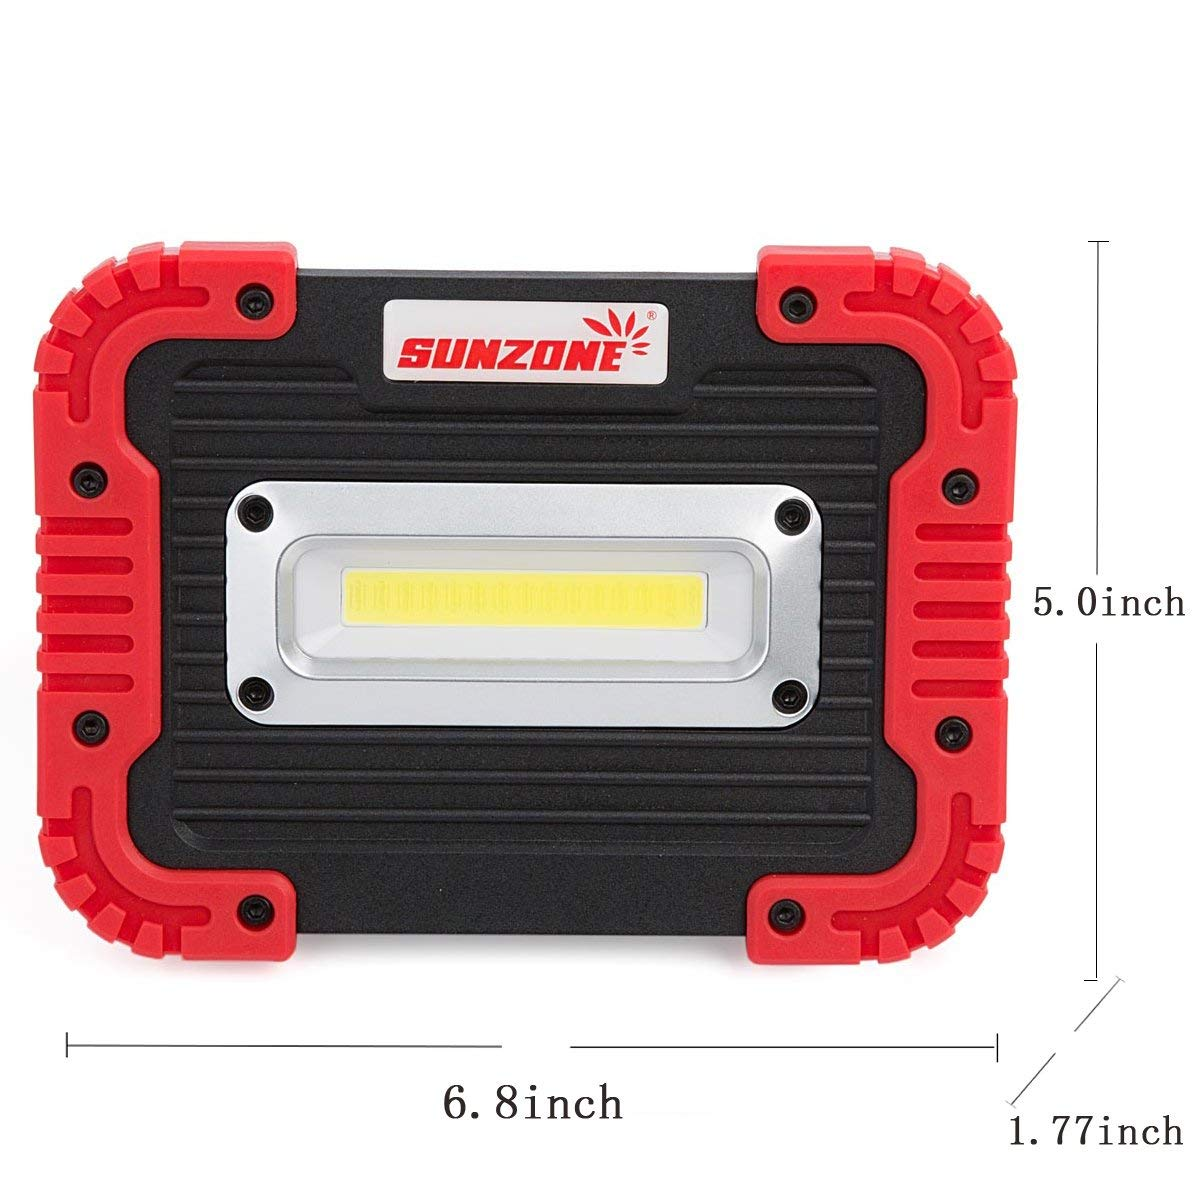 Yellow 2 Pack SUNZONE LED Work Light Rechargeable Portable Waterproof LED Flood Lights for Outdoor Camping Hiking Emergency Car Repairing and Job Site Lighting